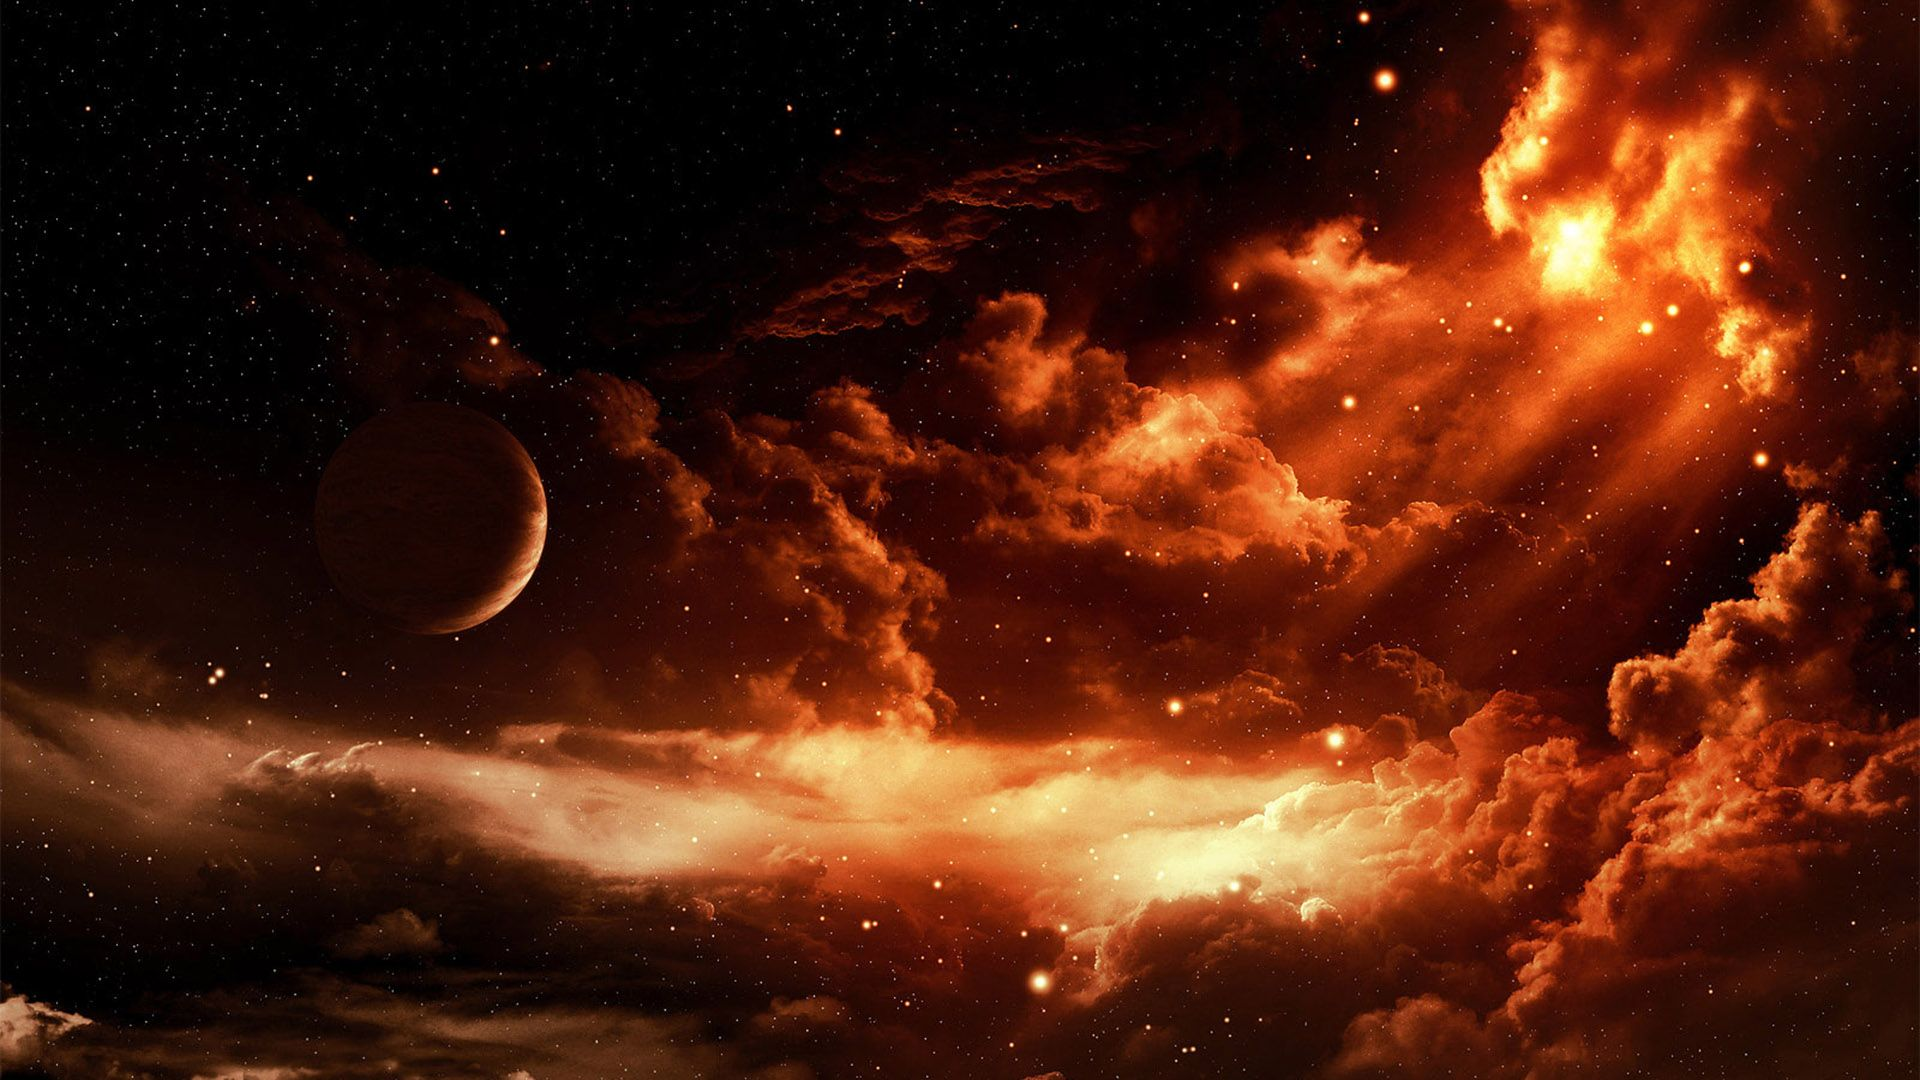 Outer Space Wallpaper Collection For Free Download